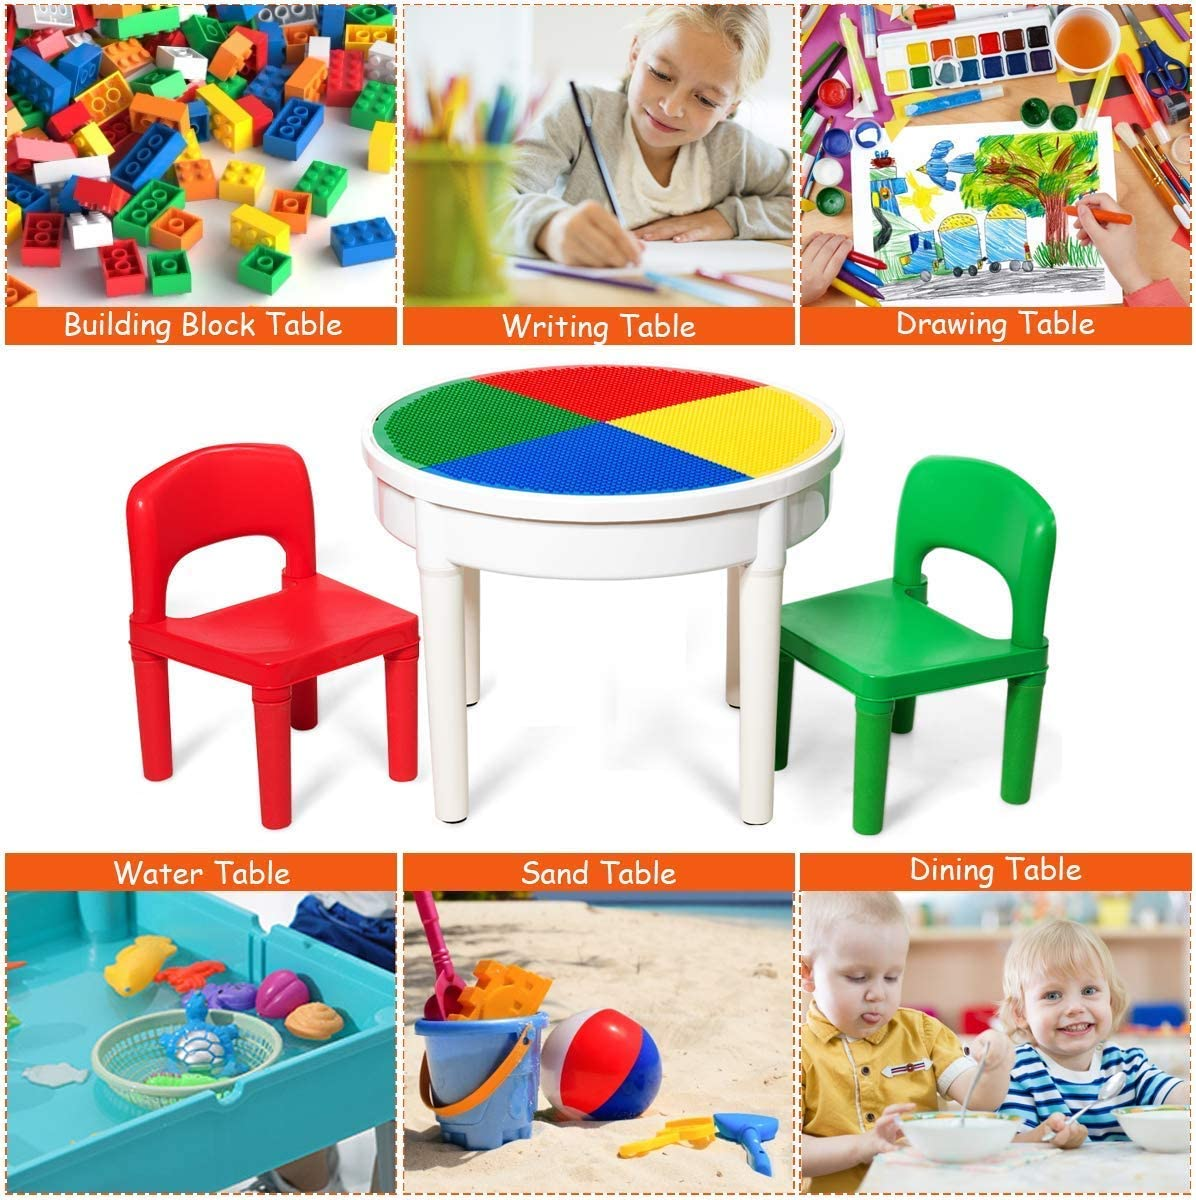 pour Enfants de Plus de 3 Ans COSTWAY Table de Construction Ronde 3 en 1 Ensemble de Table de Jeu pour Enfants Comprenant 2 Chaises et 300 Petits Blocs Multicolore